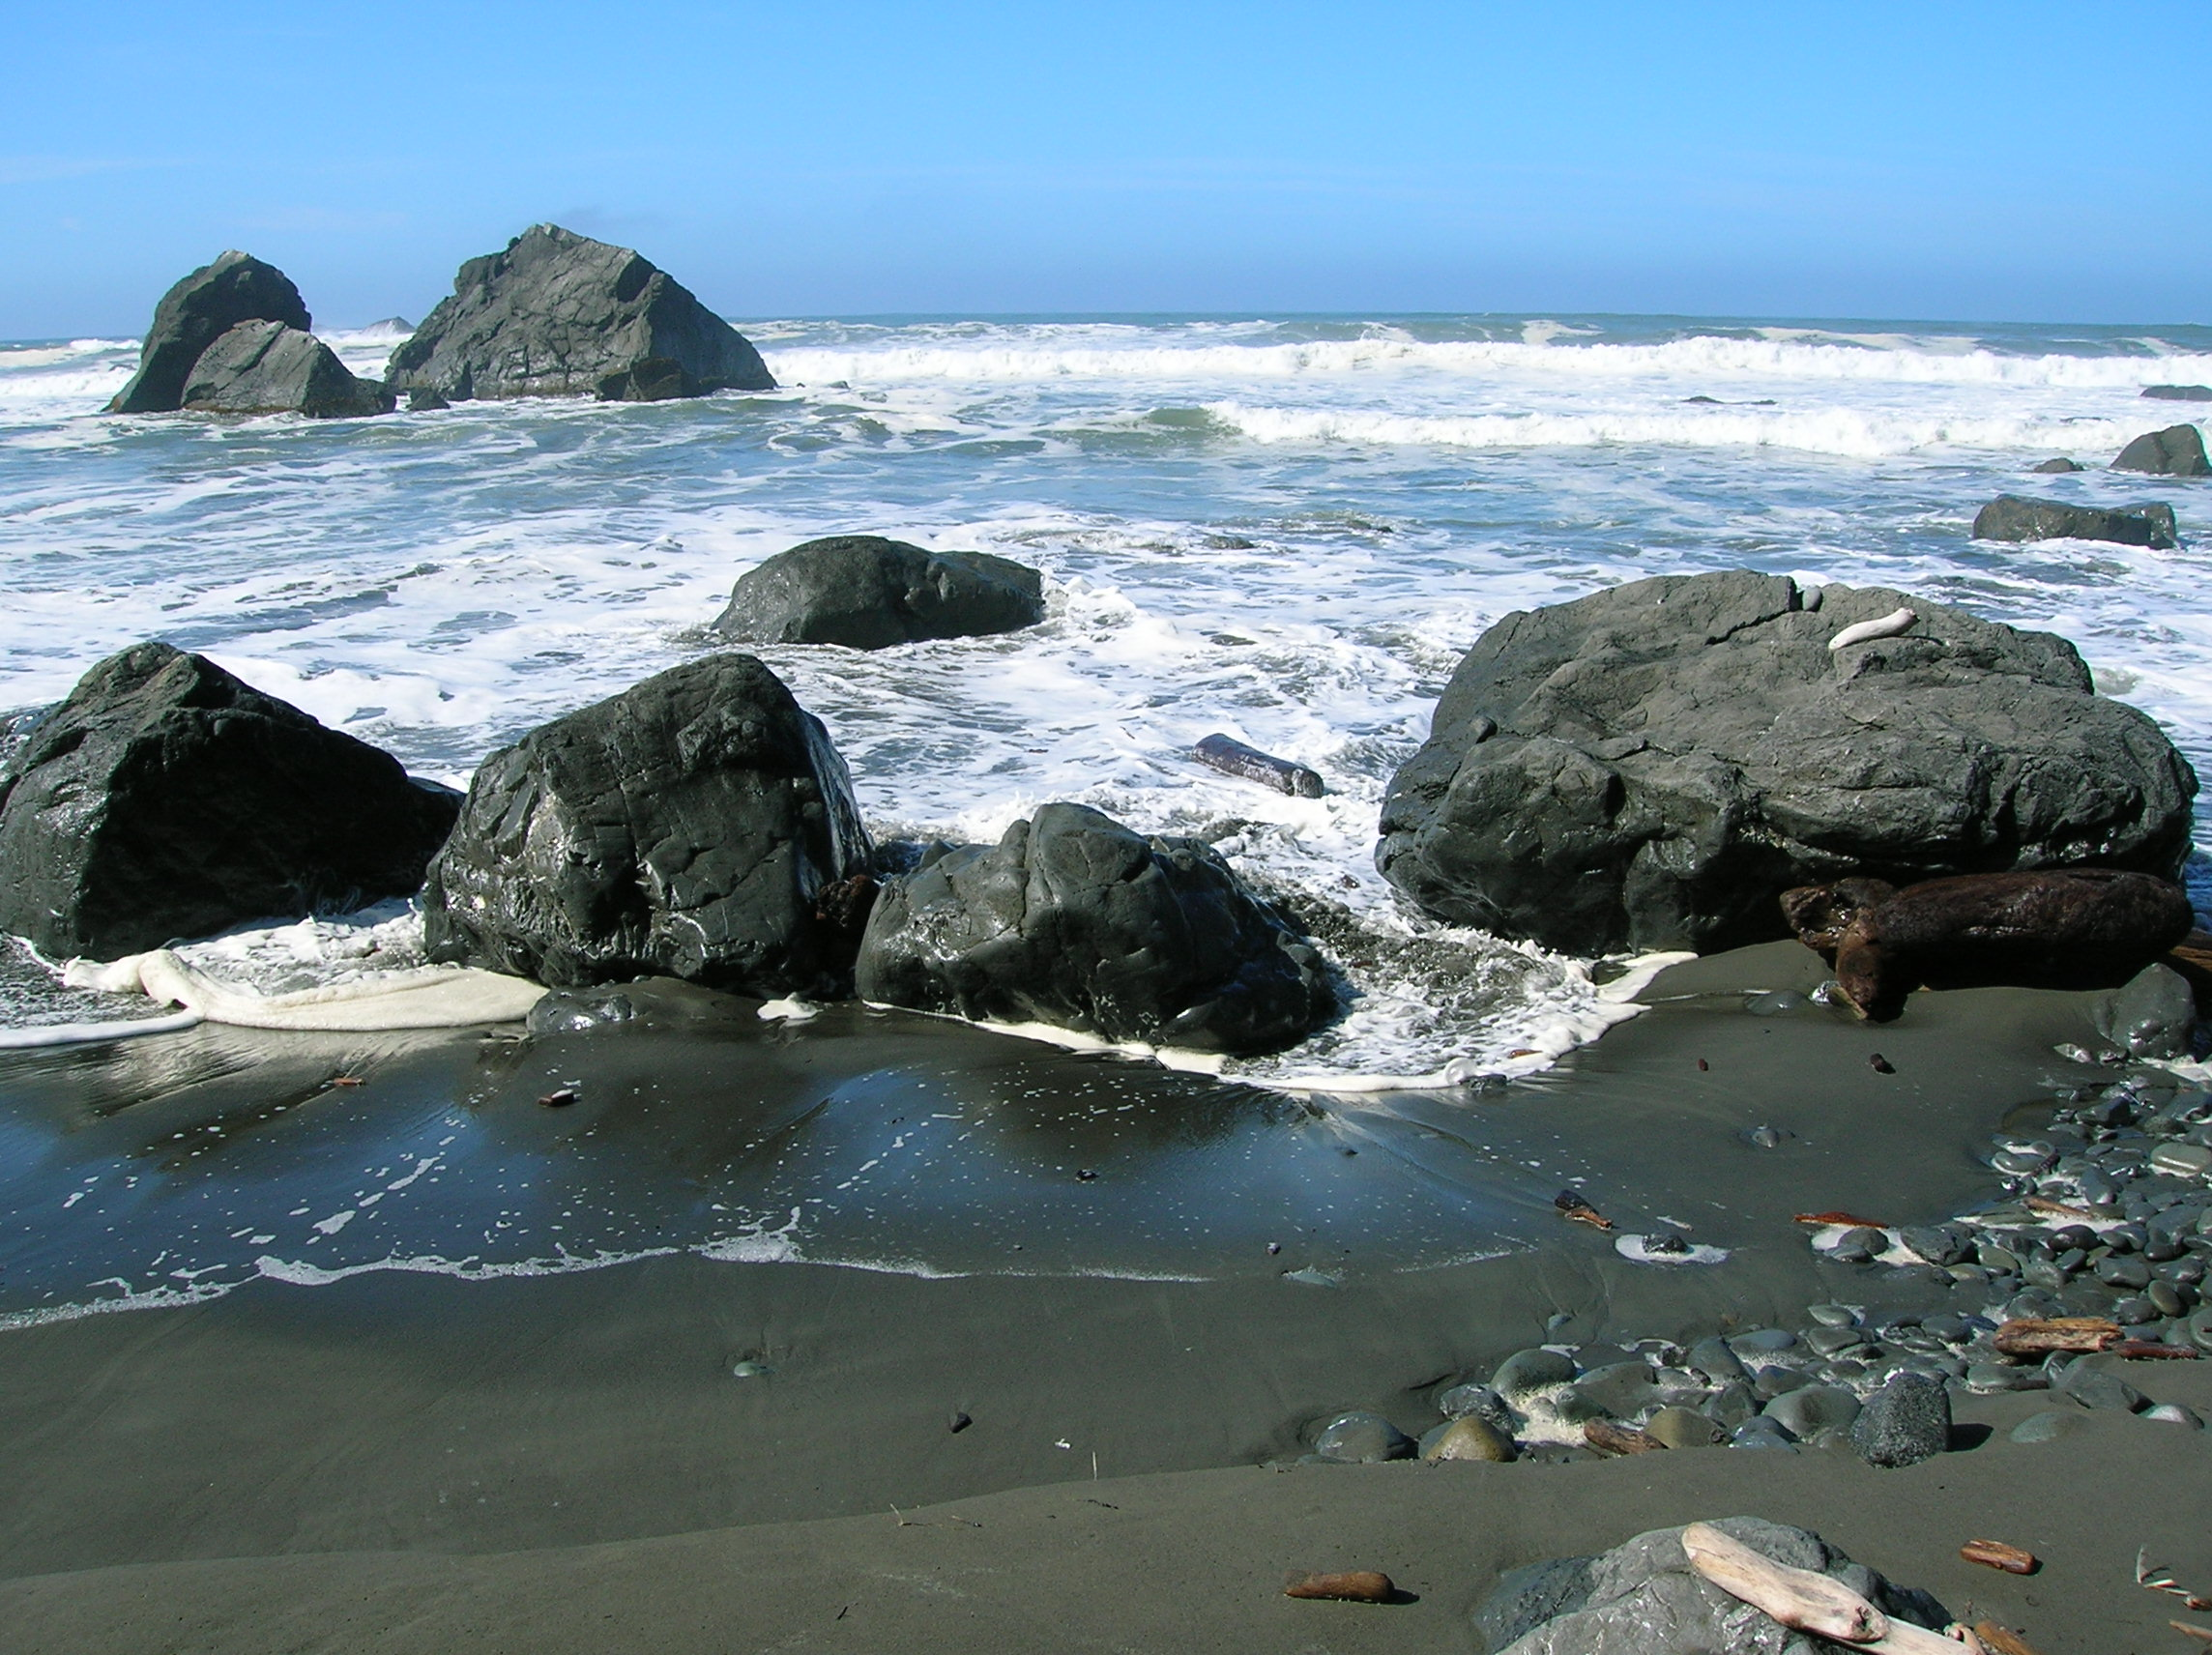 The ocean at the end of the Klamath River as seen from the Costal 1843